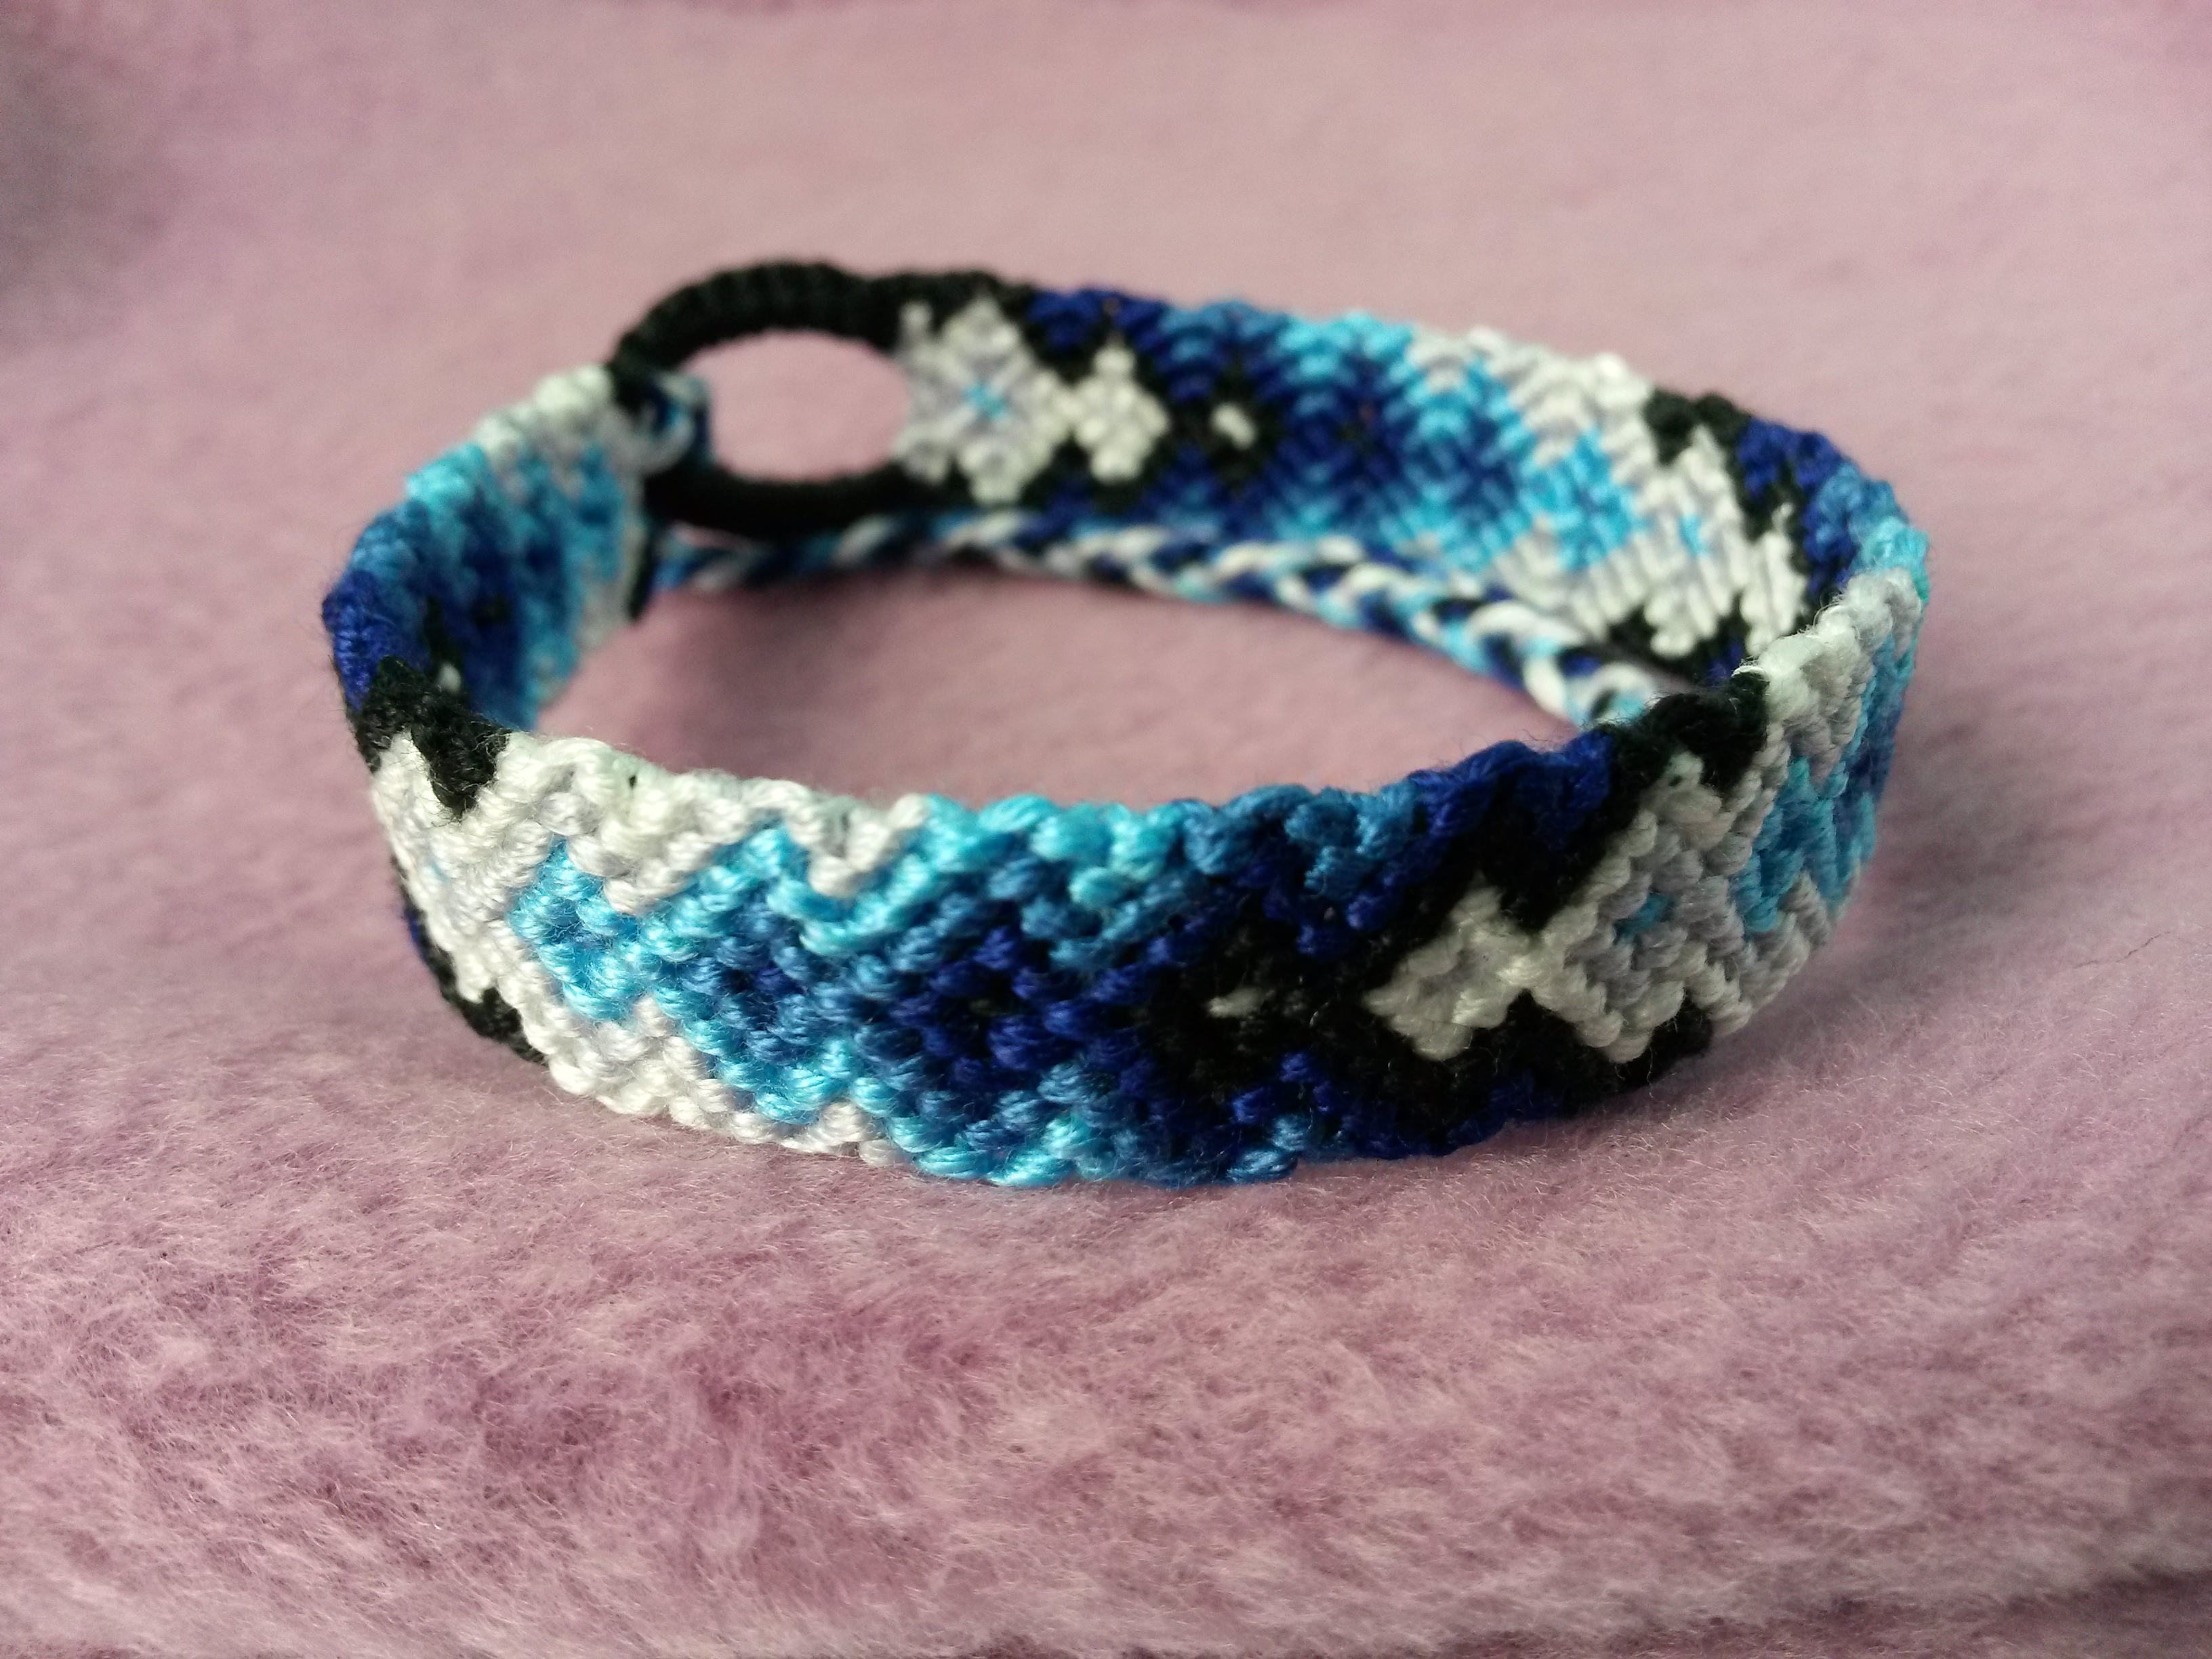 friendship stripe strings bracelets net candy alternative bracelet anklet tutorial with string